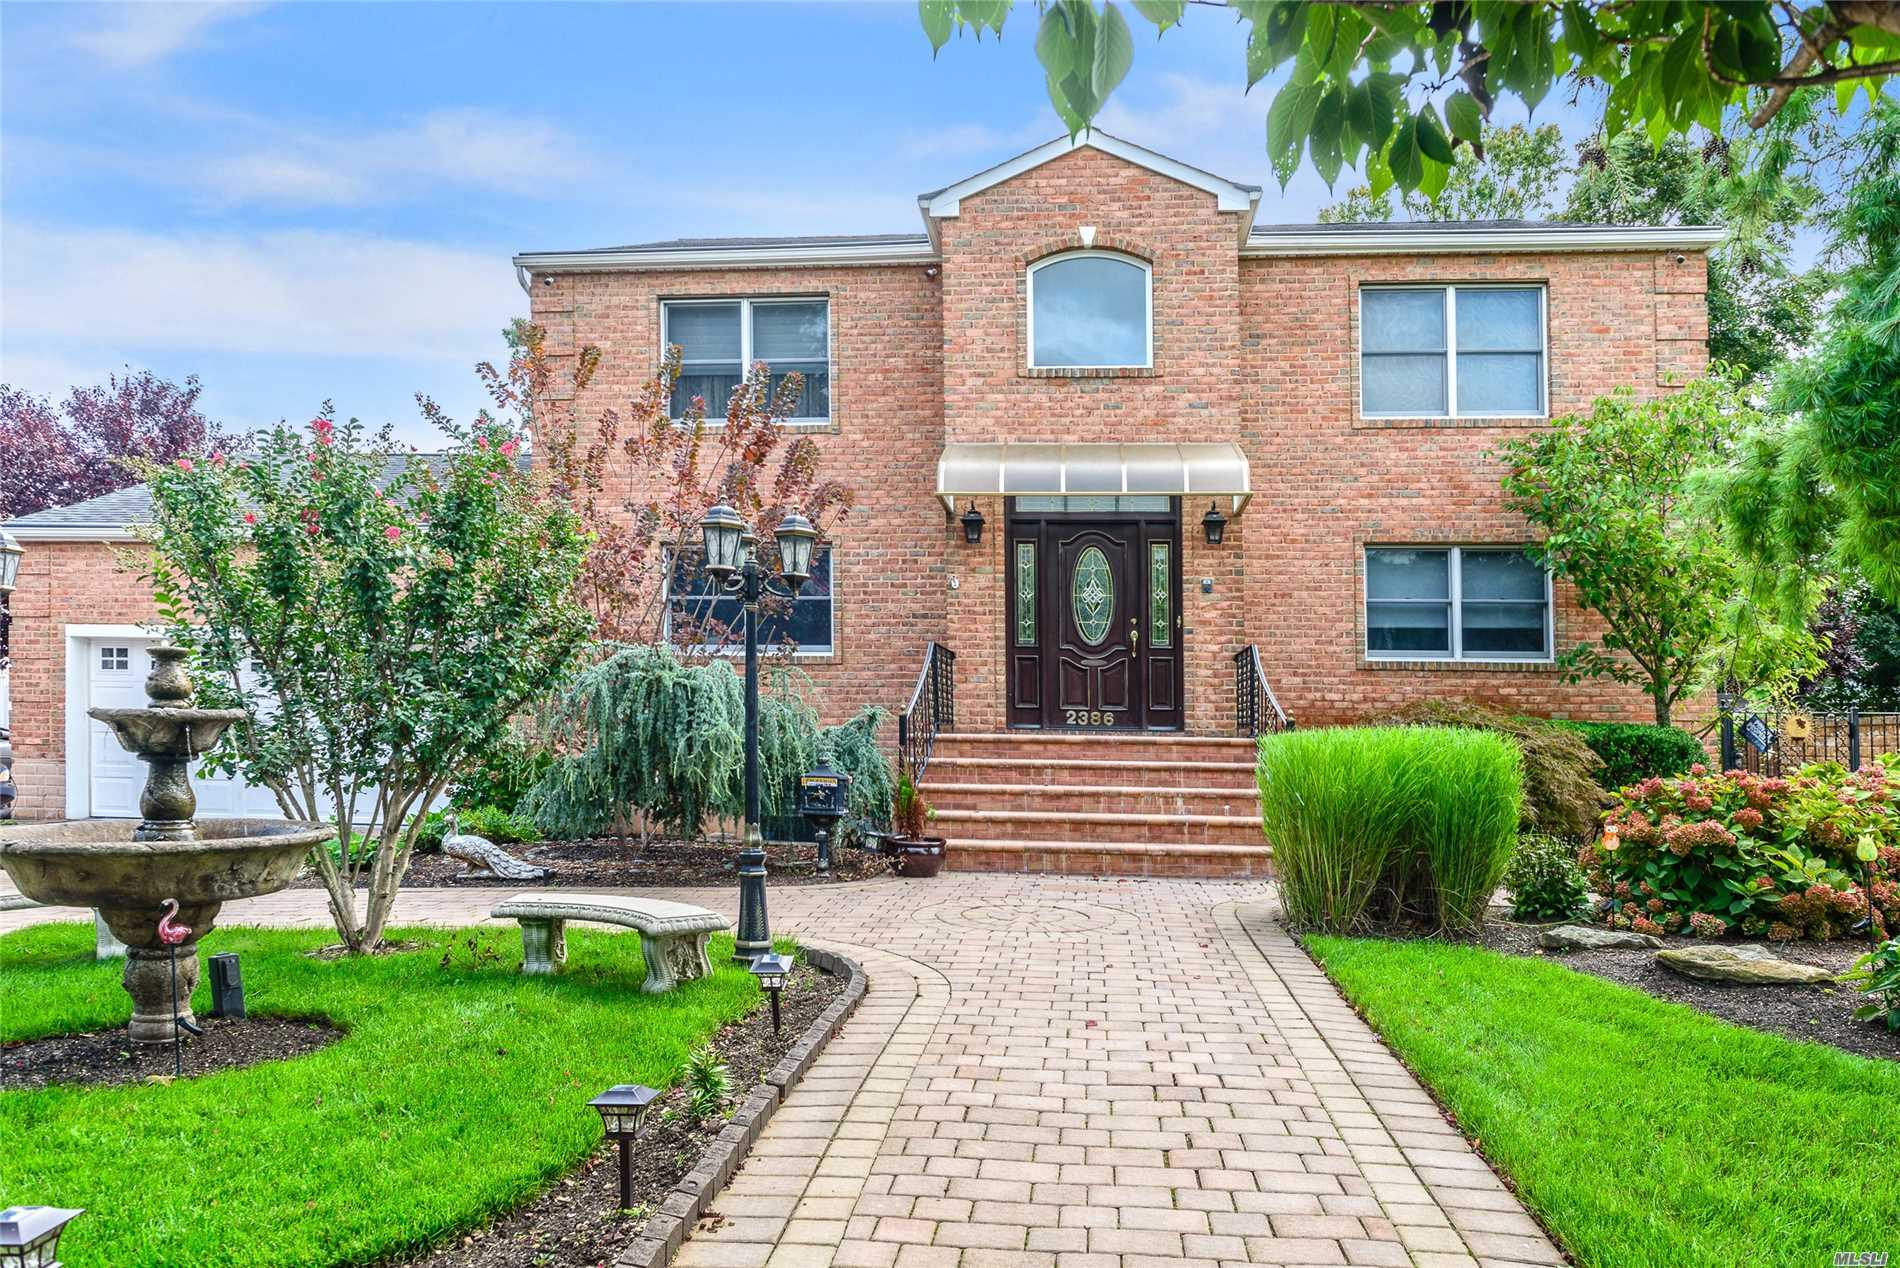 2386 Elk Ct - Bellmore, New York